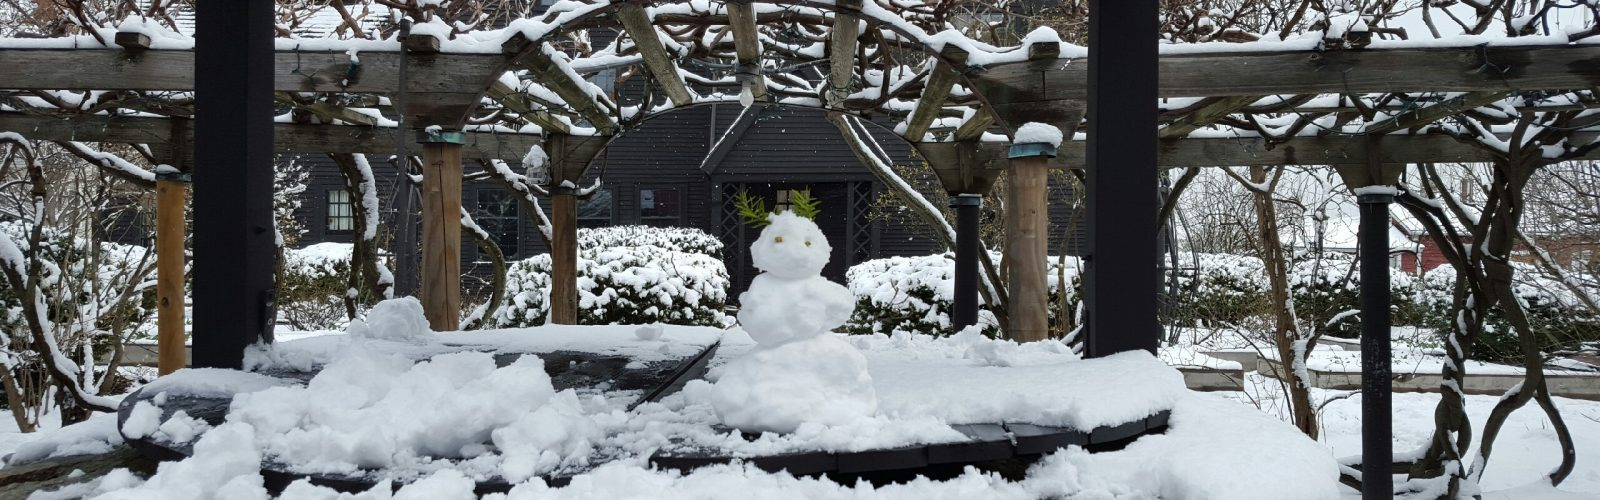 A snowman on the well at The House of the Seven Gables